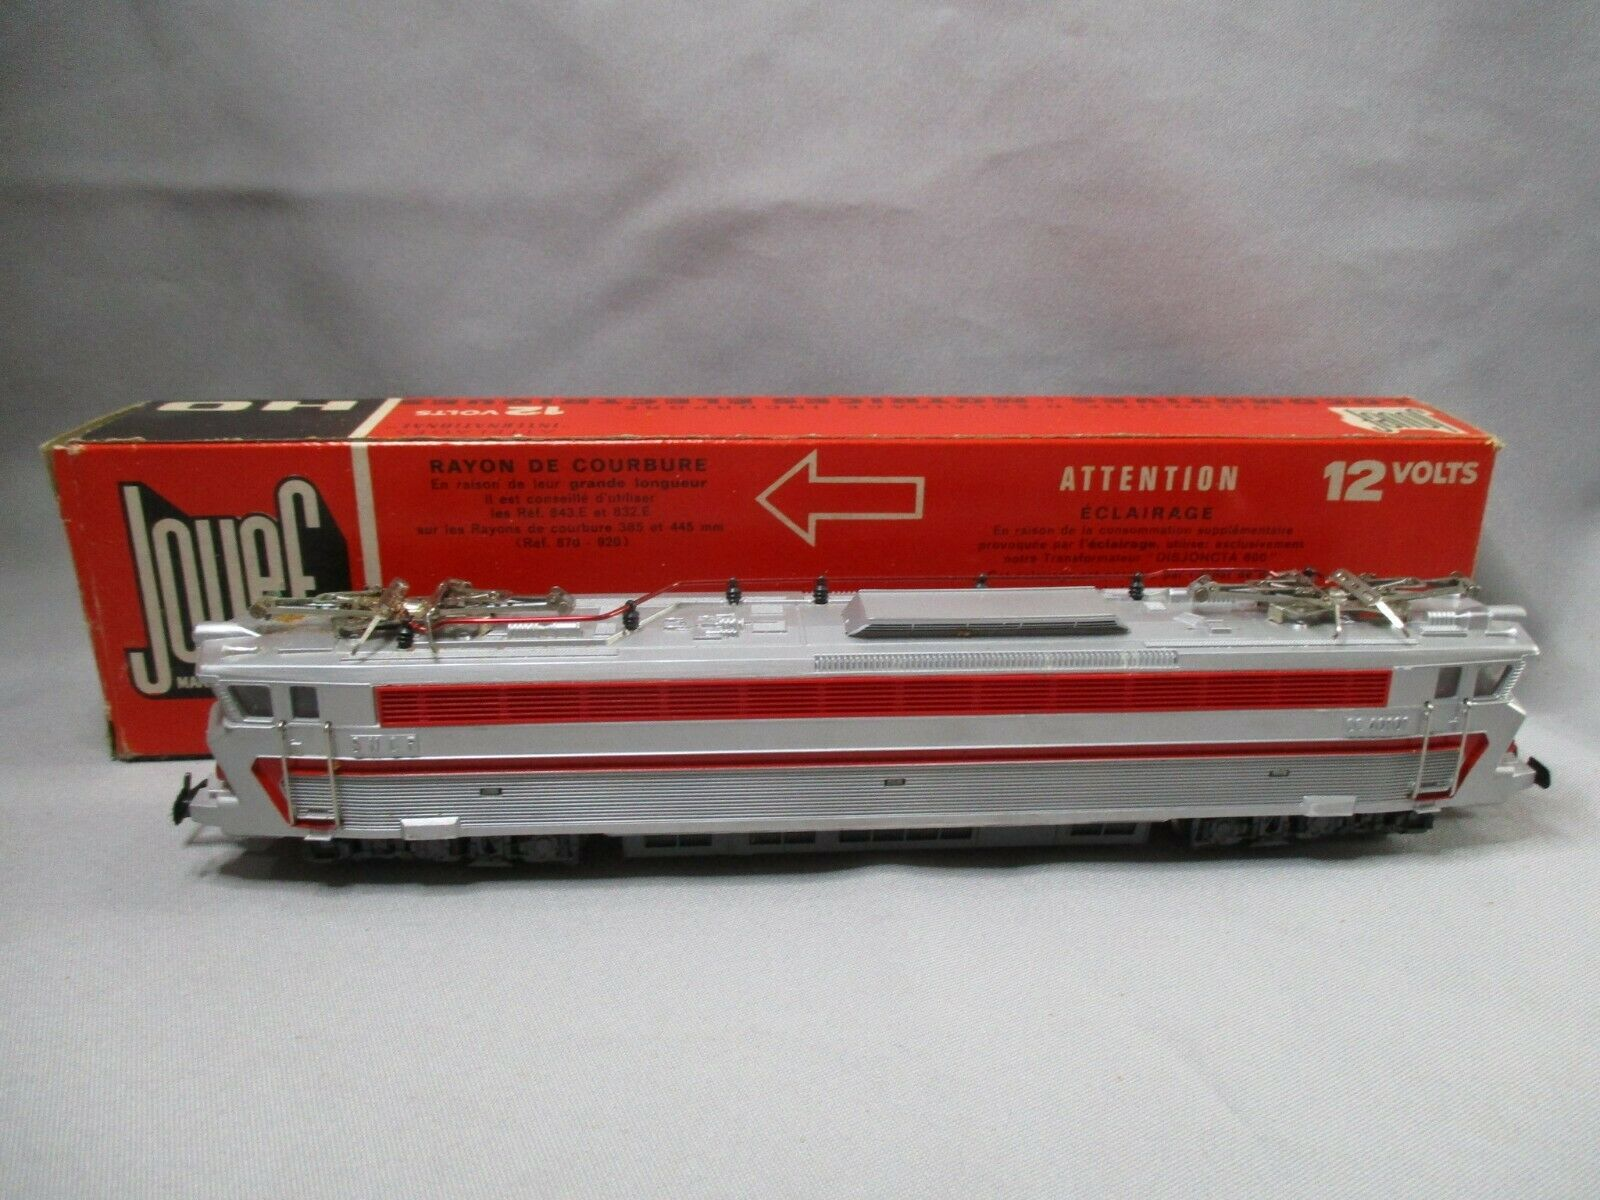 Ak433 jouef oh locomotive electrique tee cc 40.101 ref. 833e good condition